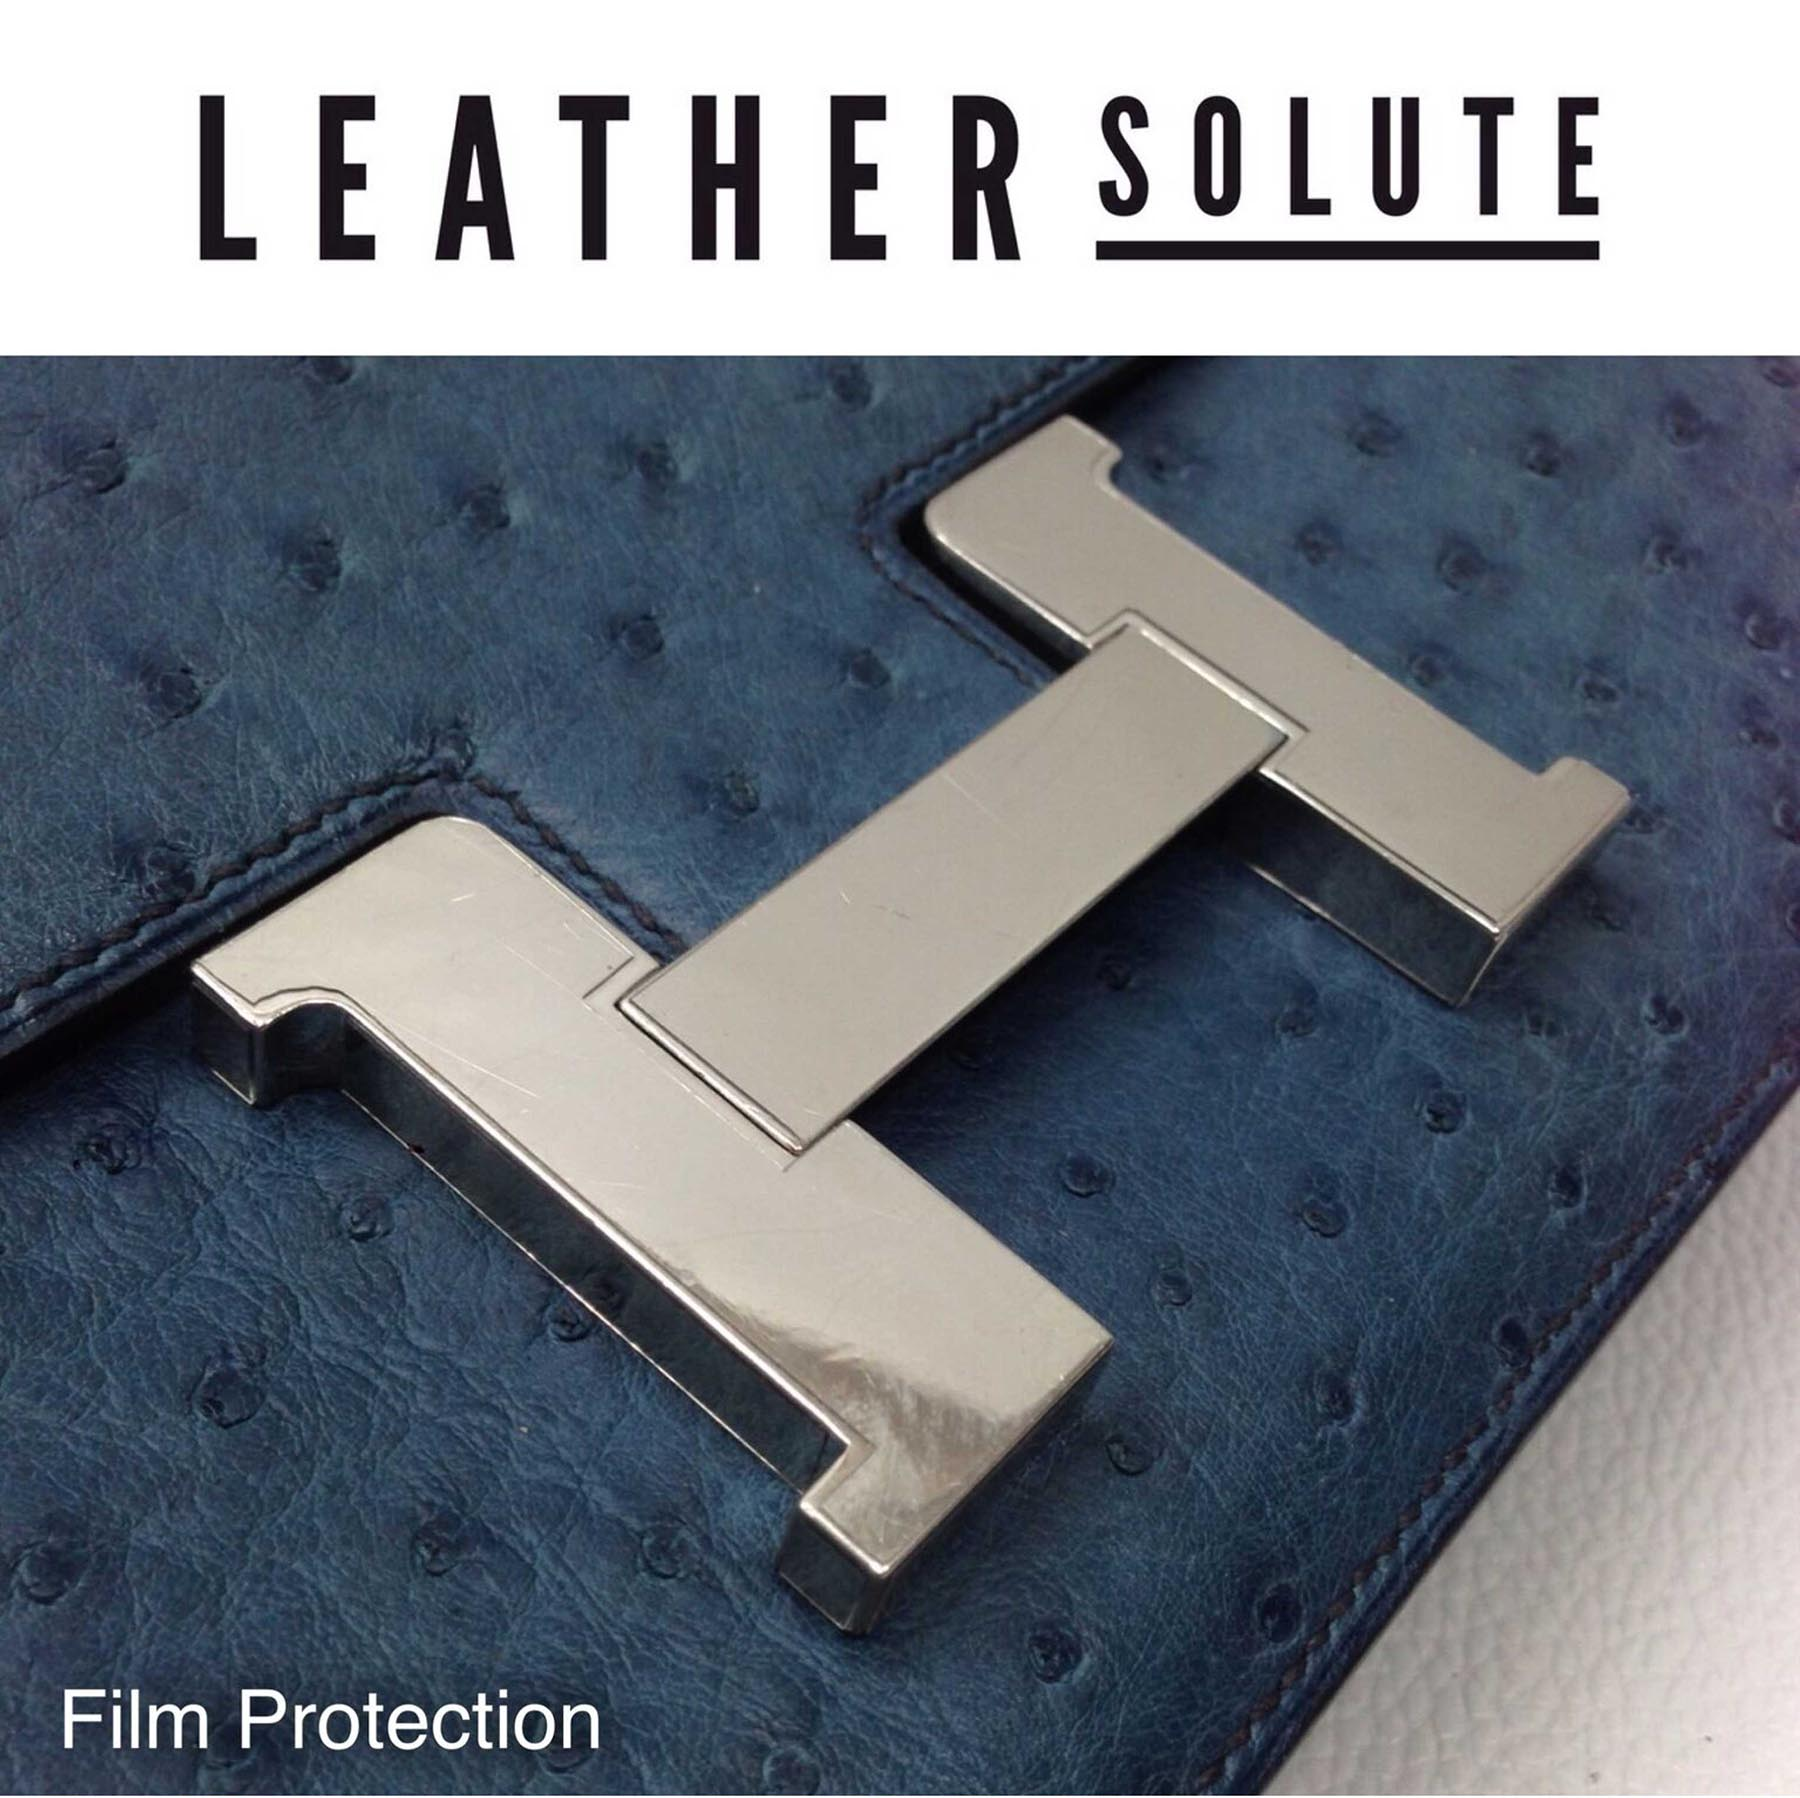 //www.leathersolute.co.th/wp-content/uploads/2018/11/film-protection-2.jpg